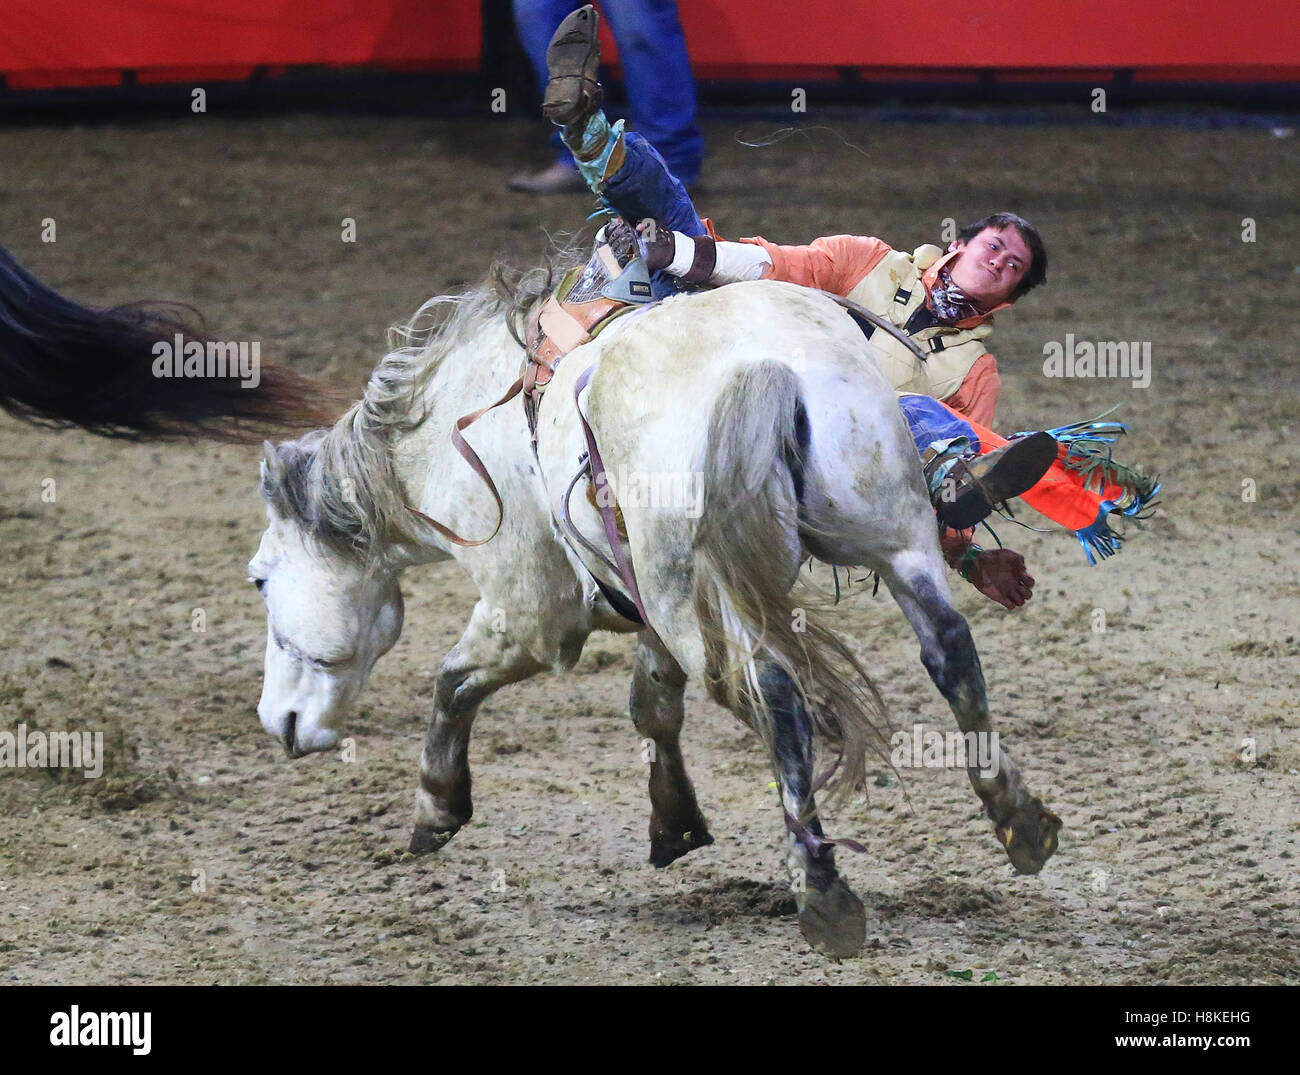 Toronto, Canada. 13th Nov, 2016. Cowboy Tanner Phillips of the United States falls from his horse during the Rodeo - Stock Image